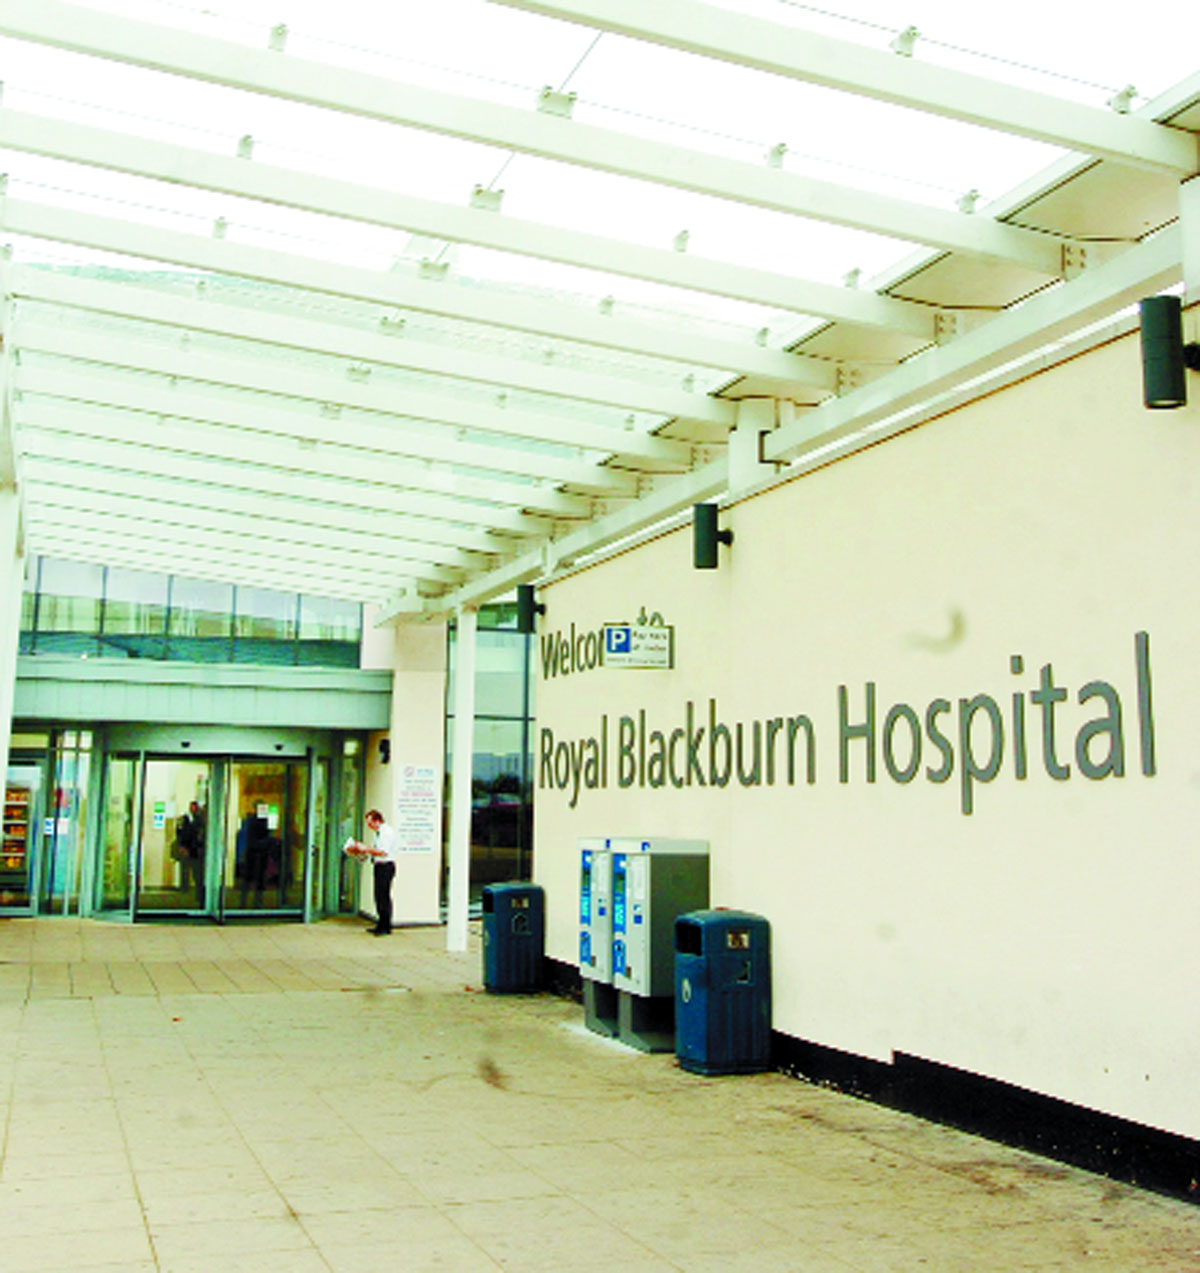 'Good progress over hospitals' in East Lancashire